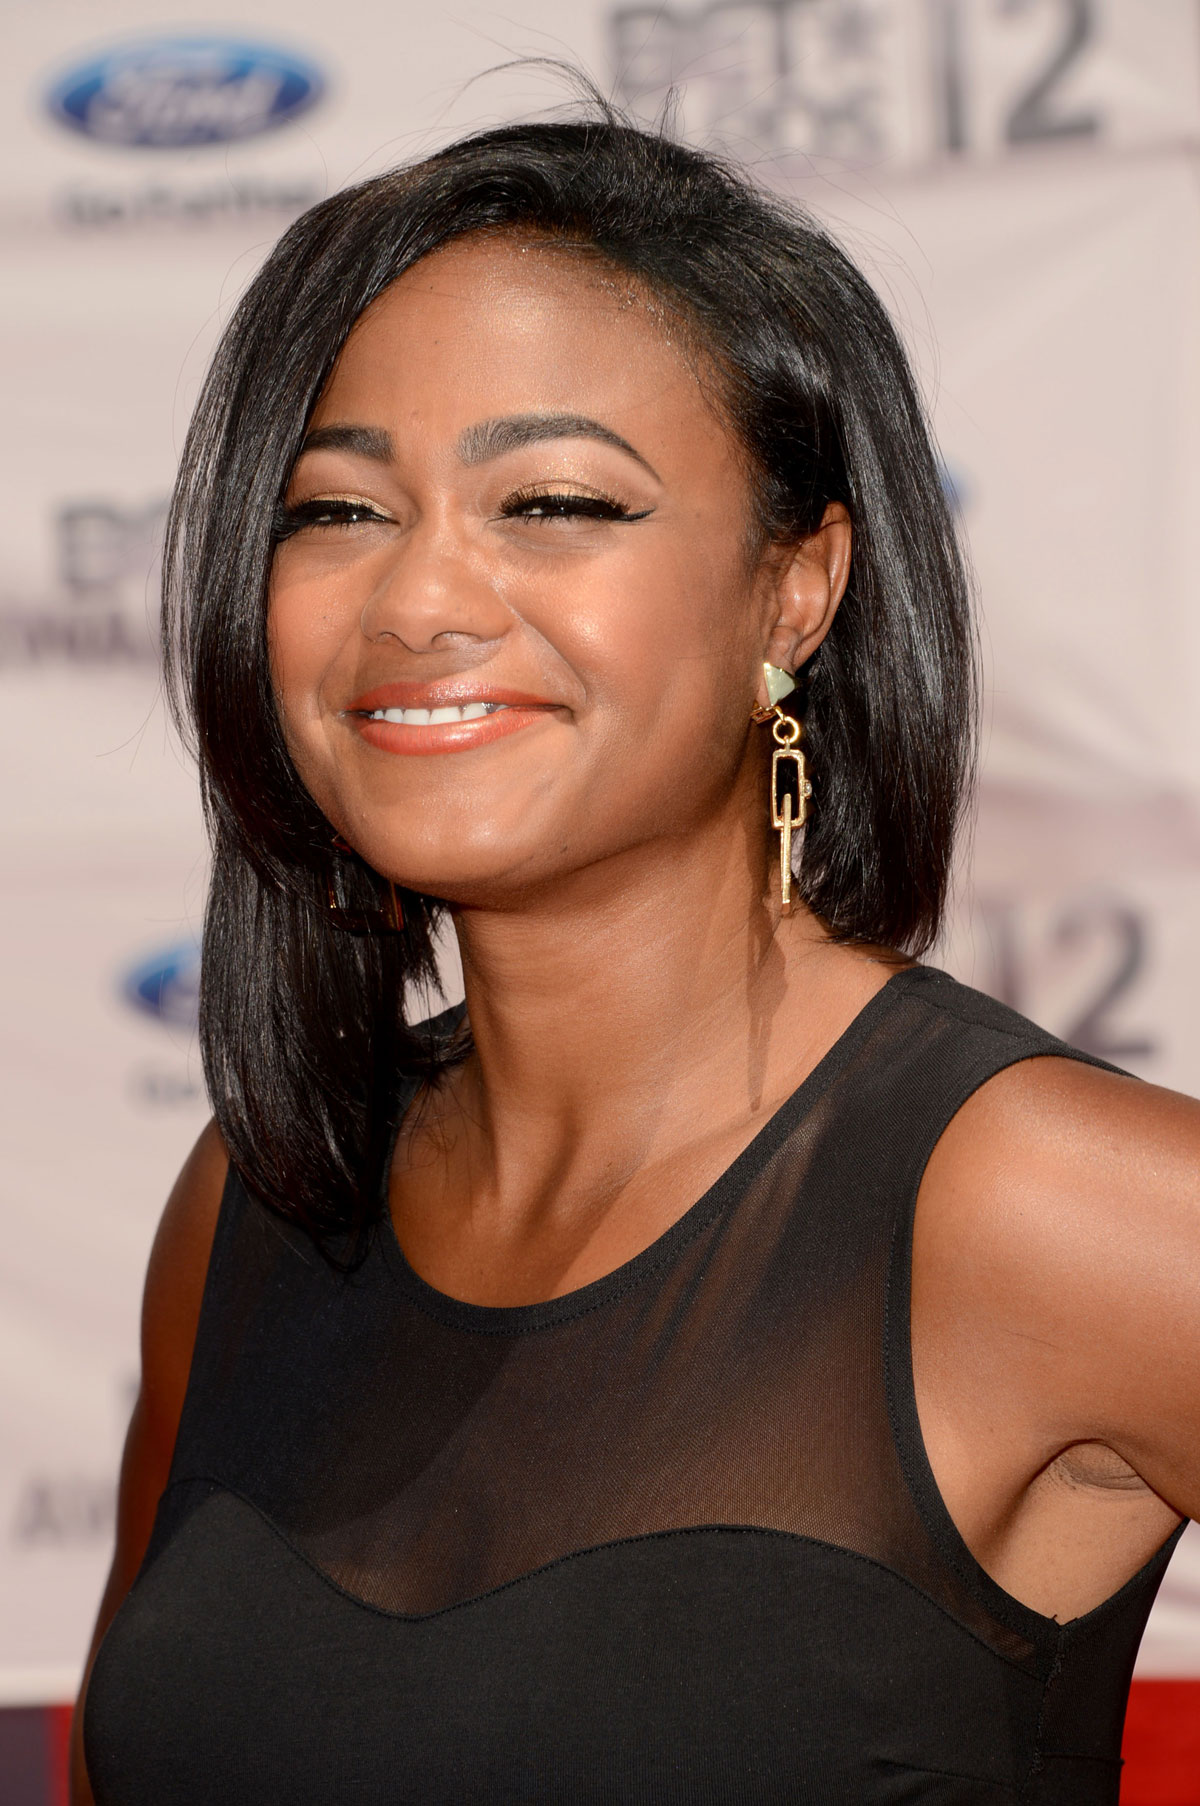 Download this Tatyana Ali Bet Awards Los Angeles picture